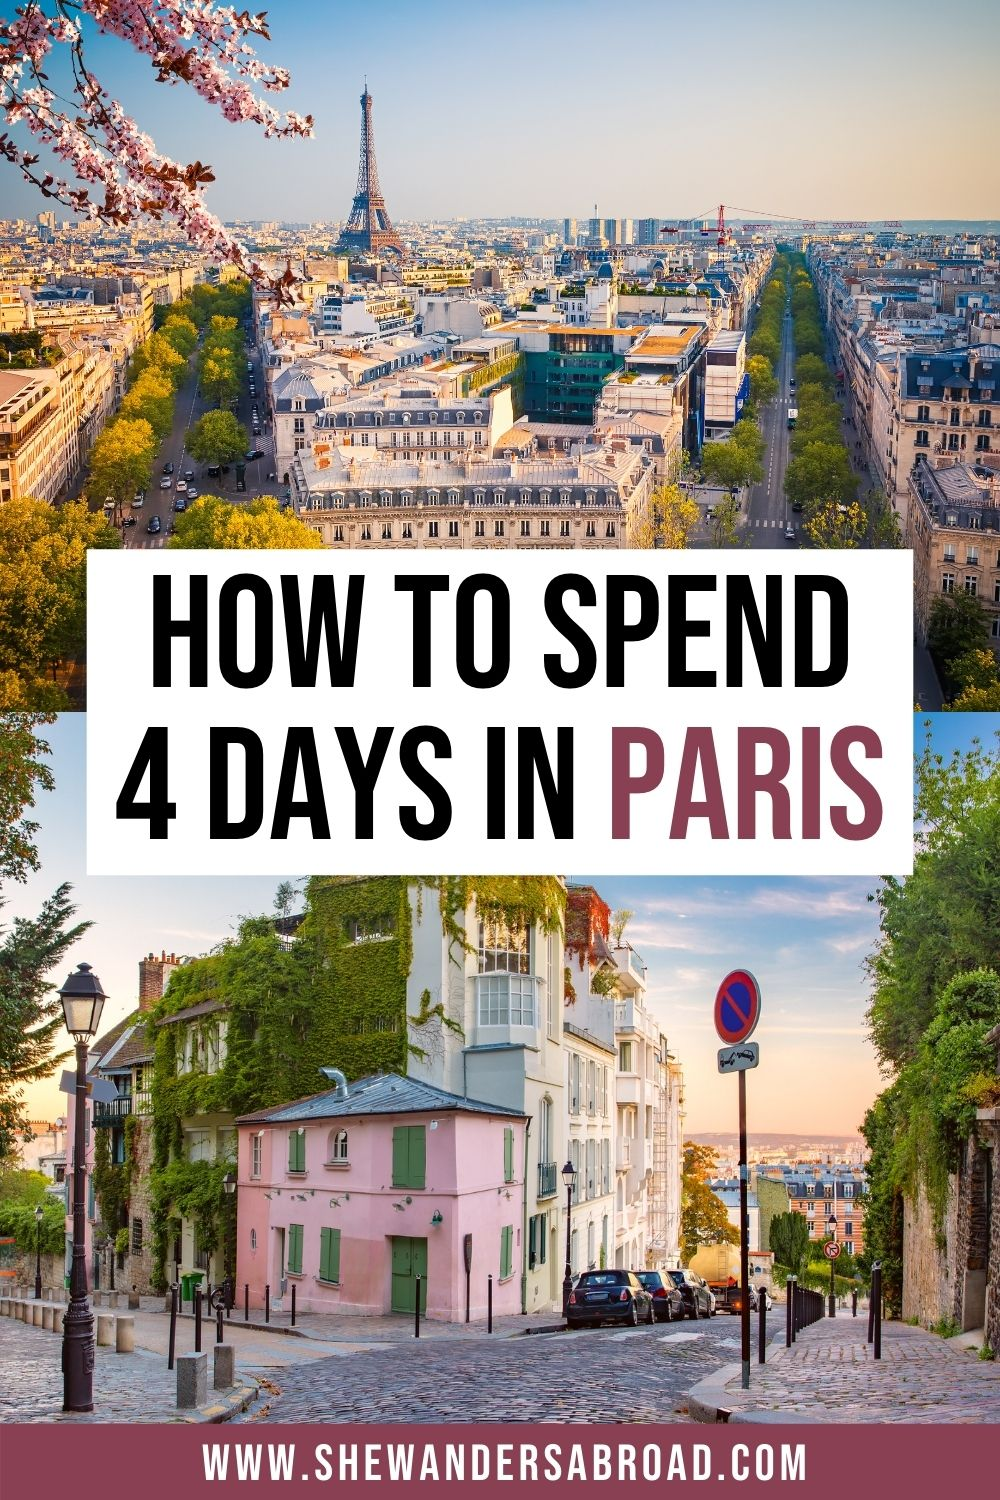 The Perfect Paris in 4 Days Itinerary